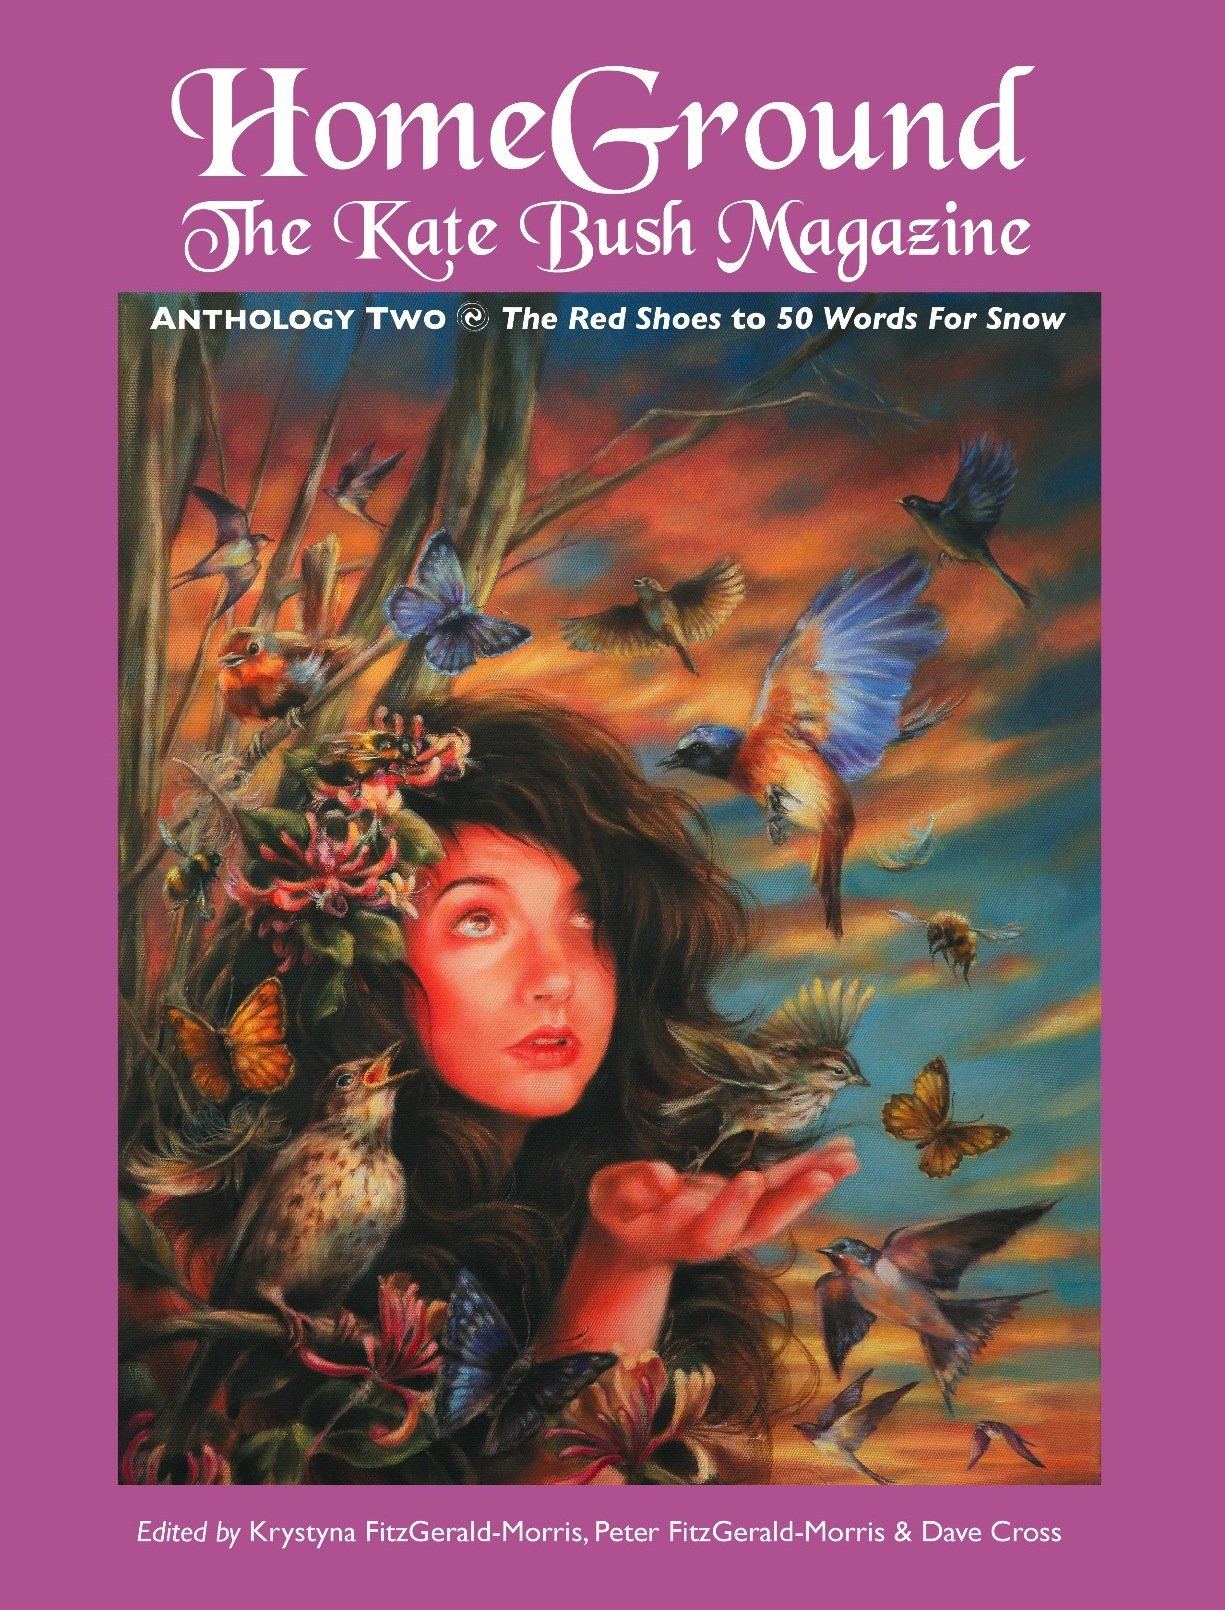 Kate Bush ISBN 1861714440 Vol 2 Paperback Cover